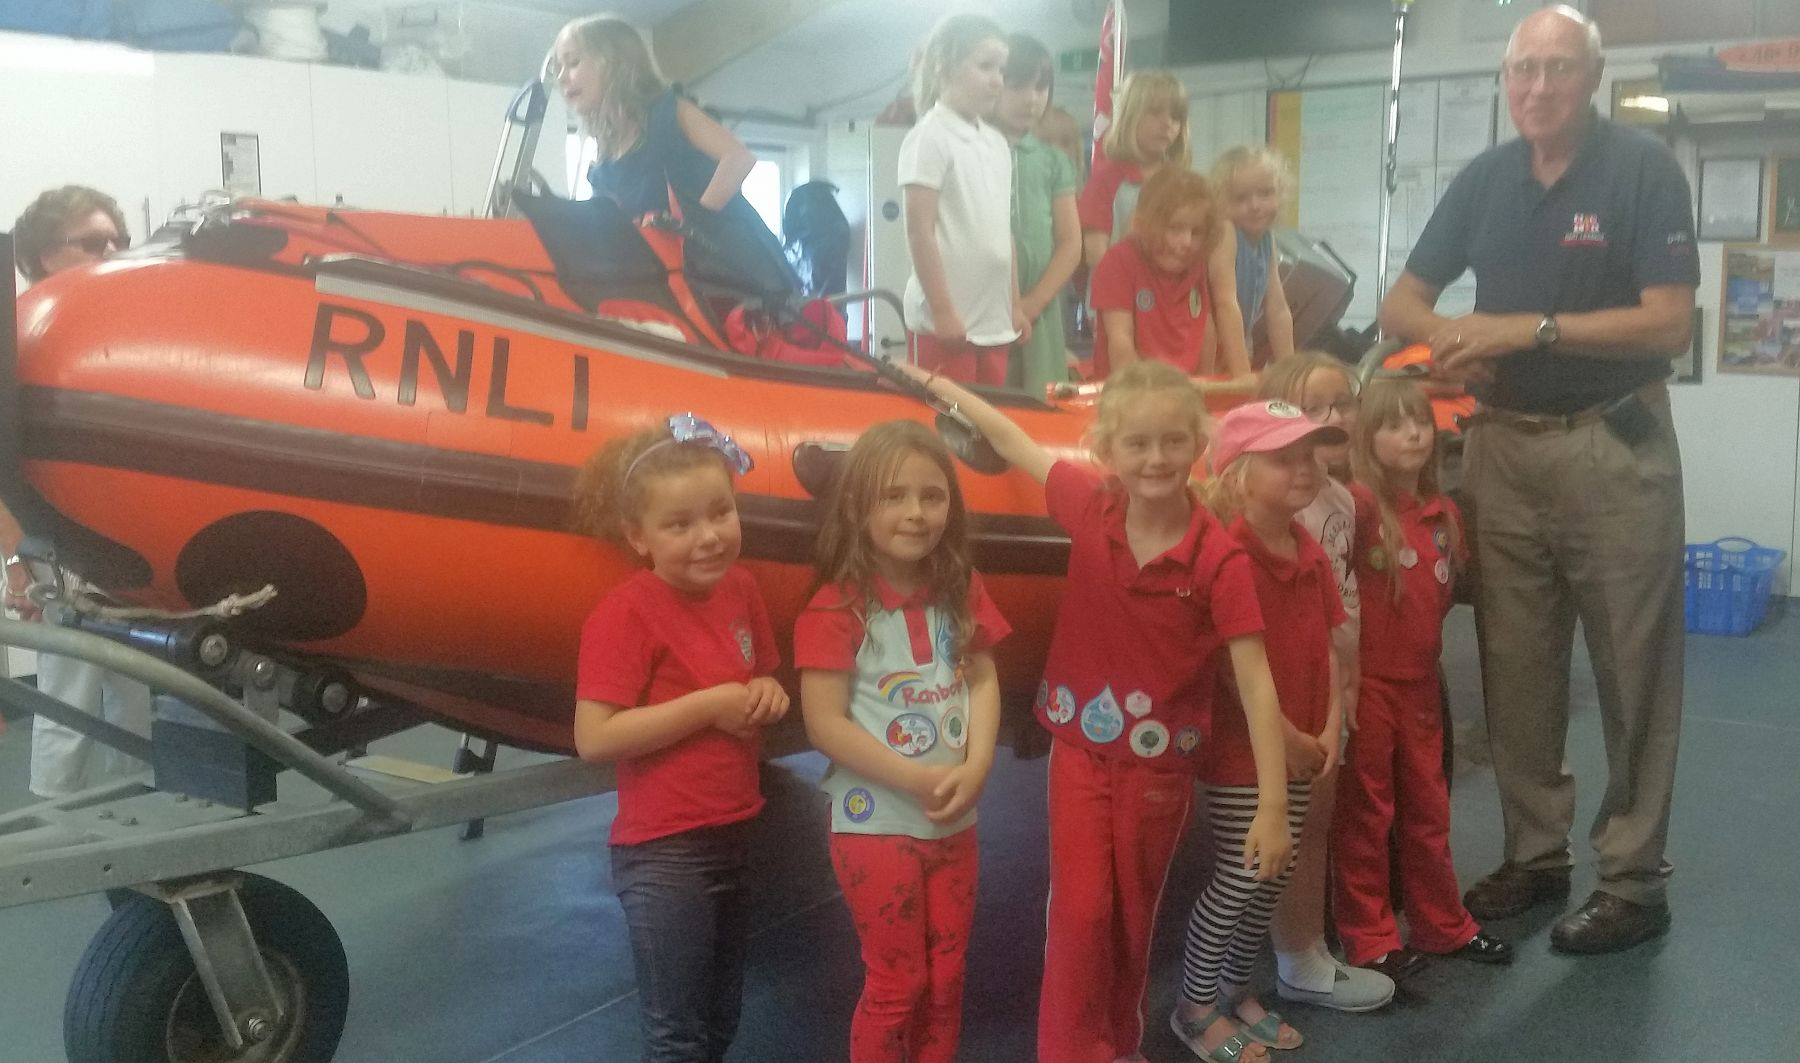 The Rainbows took it in turn to climb into the D class lifeboat